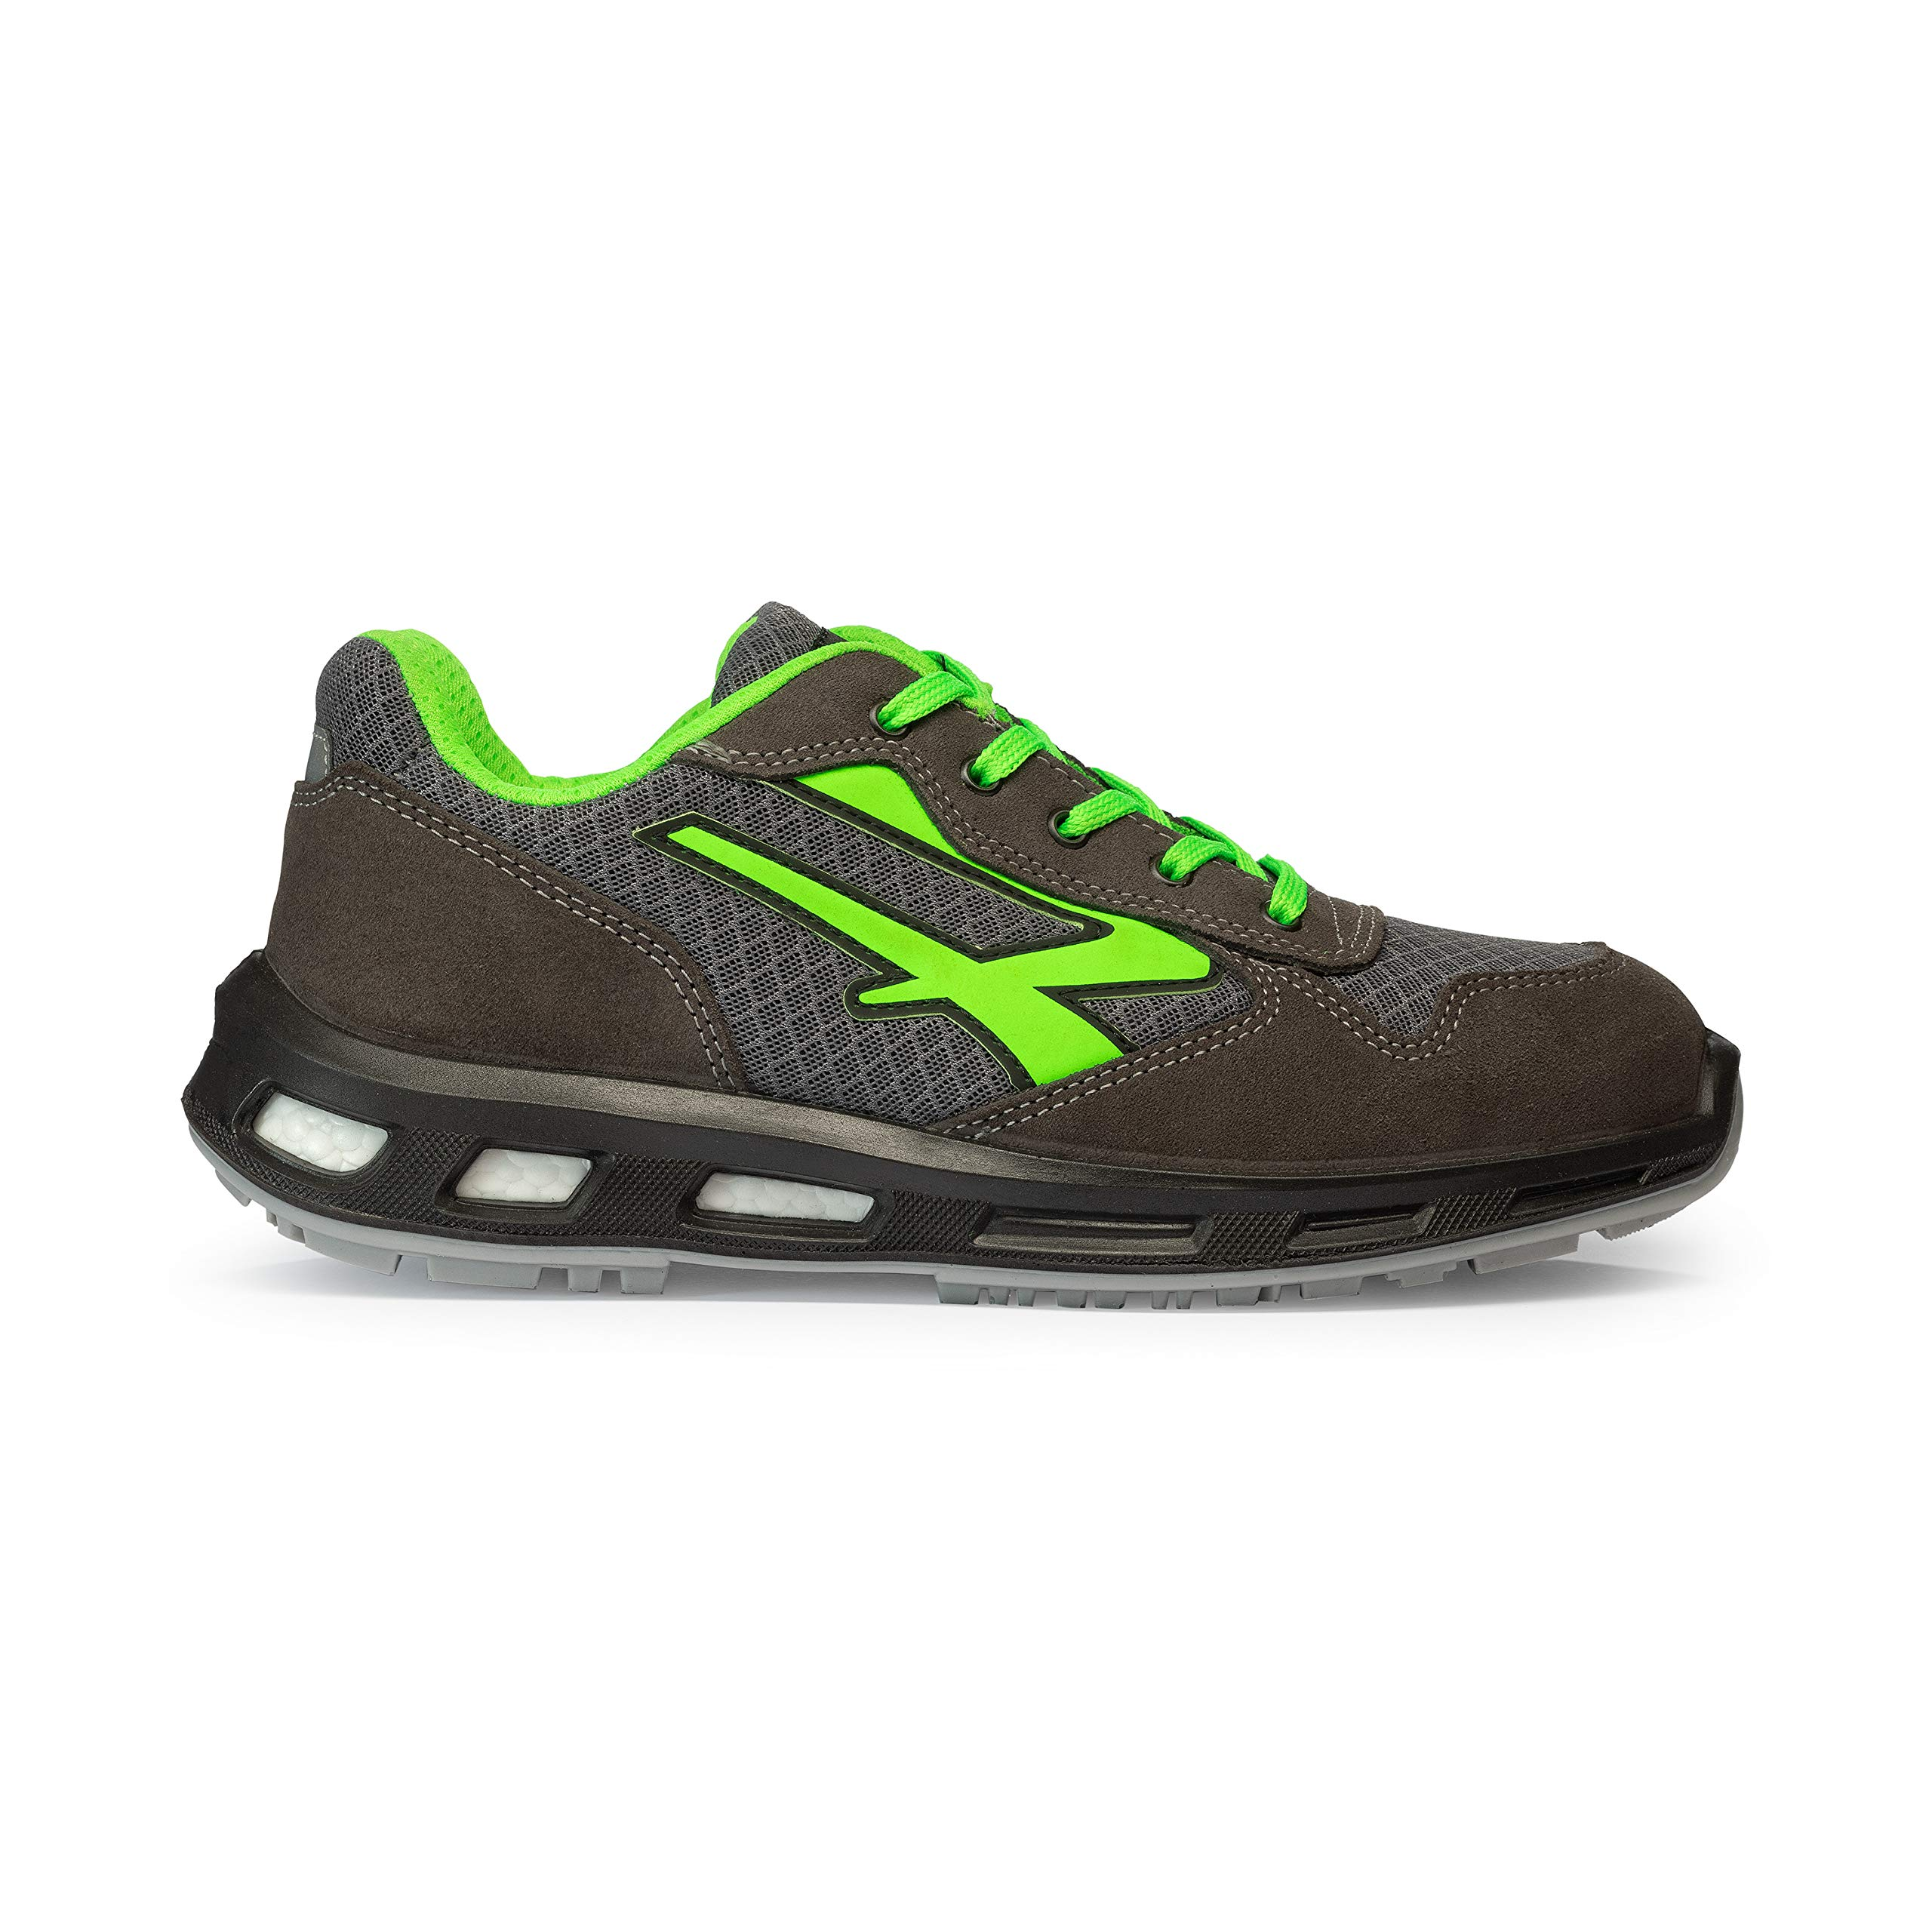 buy online 431eb 76ded POINT S1P SRC - Scarpe antinfortunistiche con suola